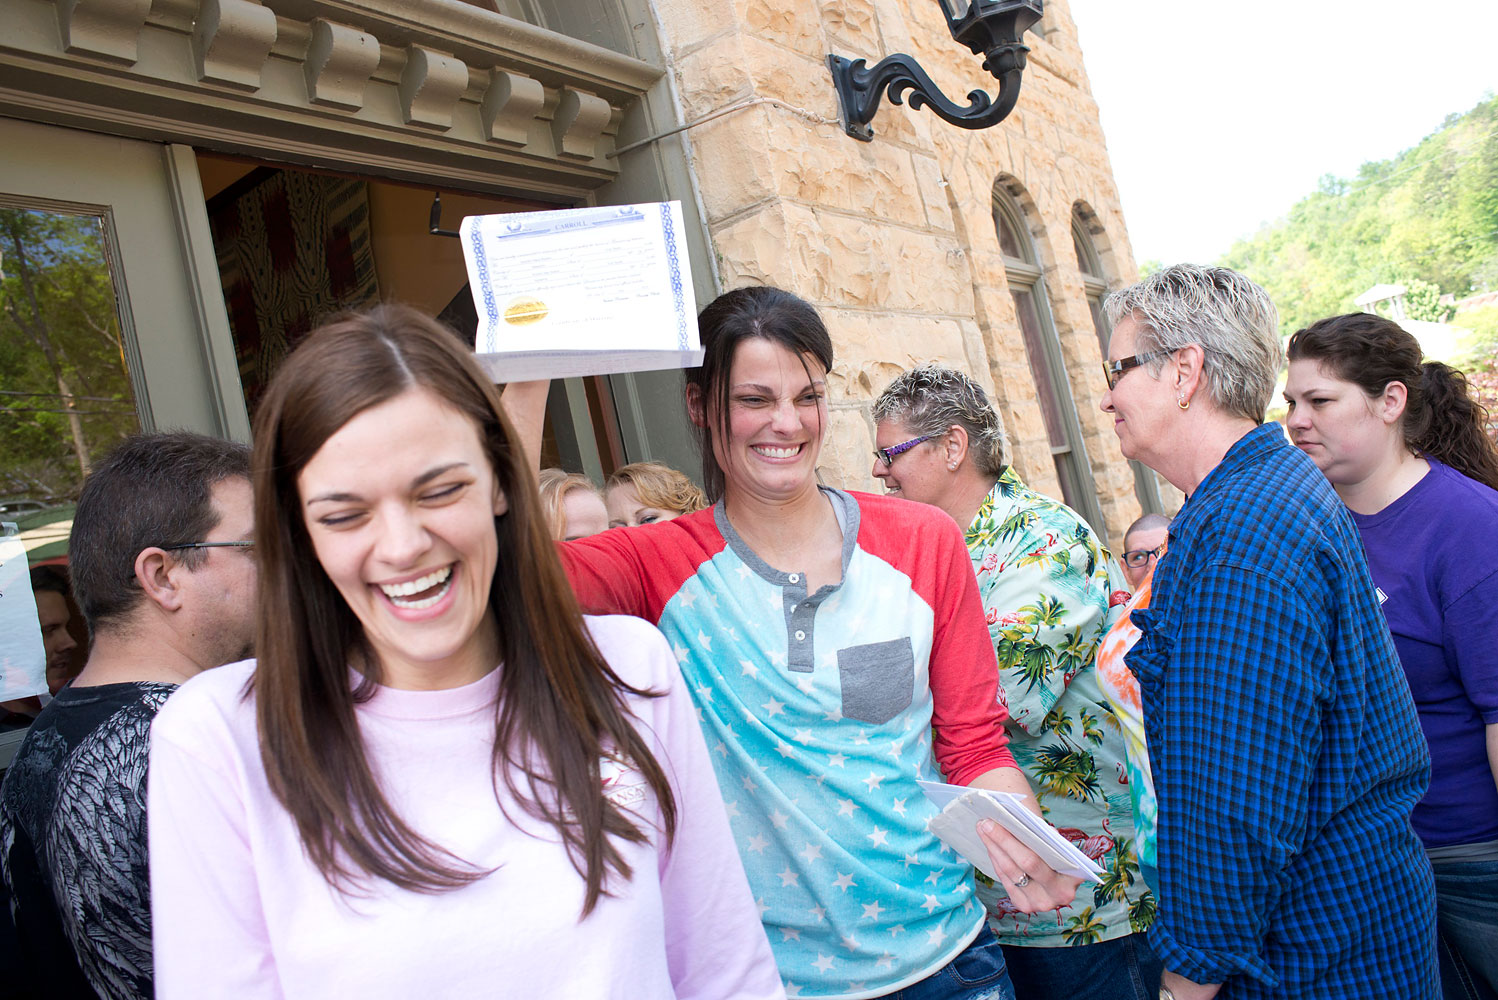 Kristin Seaton, center, of Jacksonville, Ark., holds up her marriage license as she leaves the Carroll County Courthouse in Eureka Springs, Ark., with her partner, Jennifer Rambo, left, of Fort Smith, Ark. May 10, 2014, in Eureka Springs, Ark.